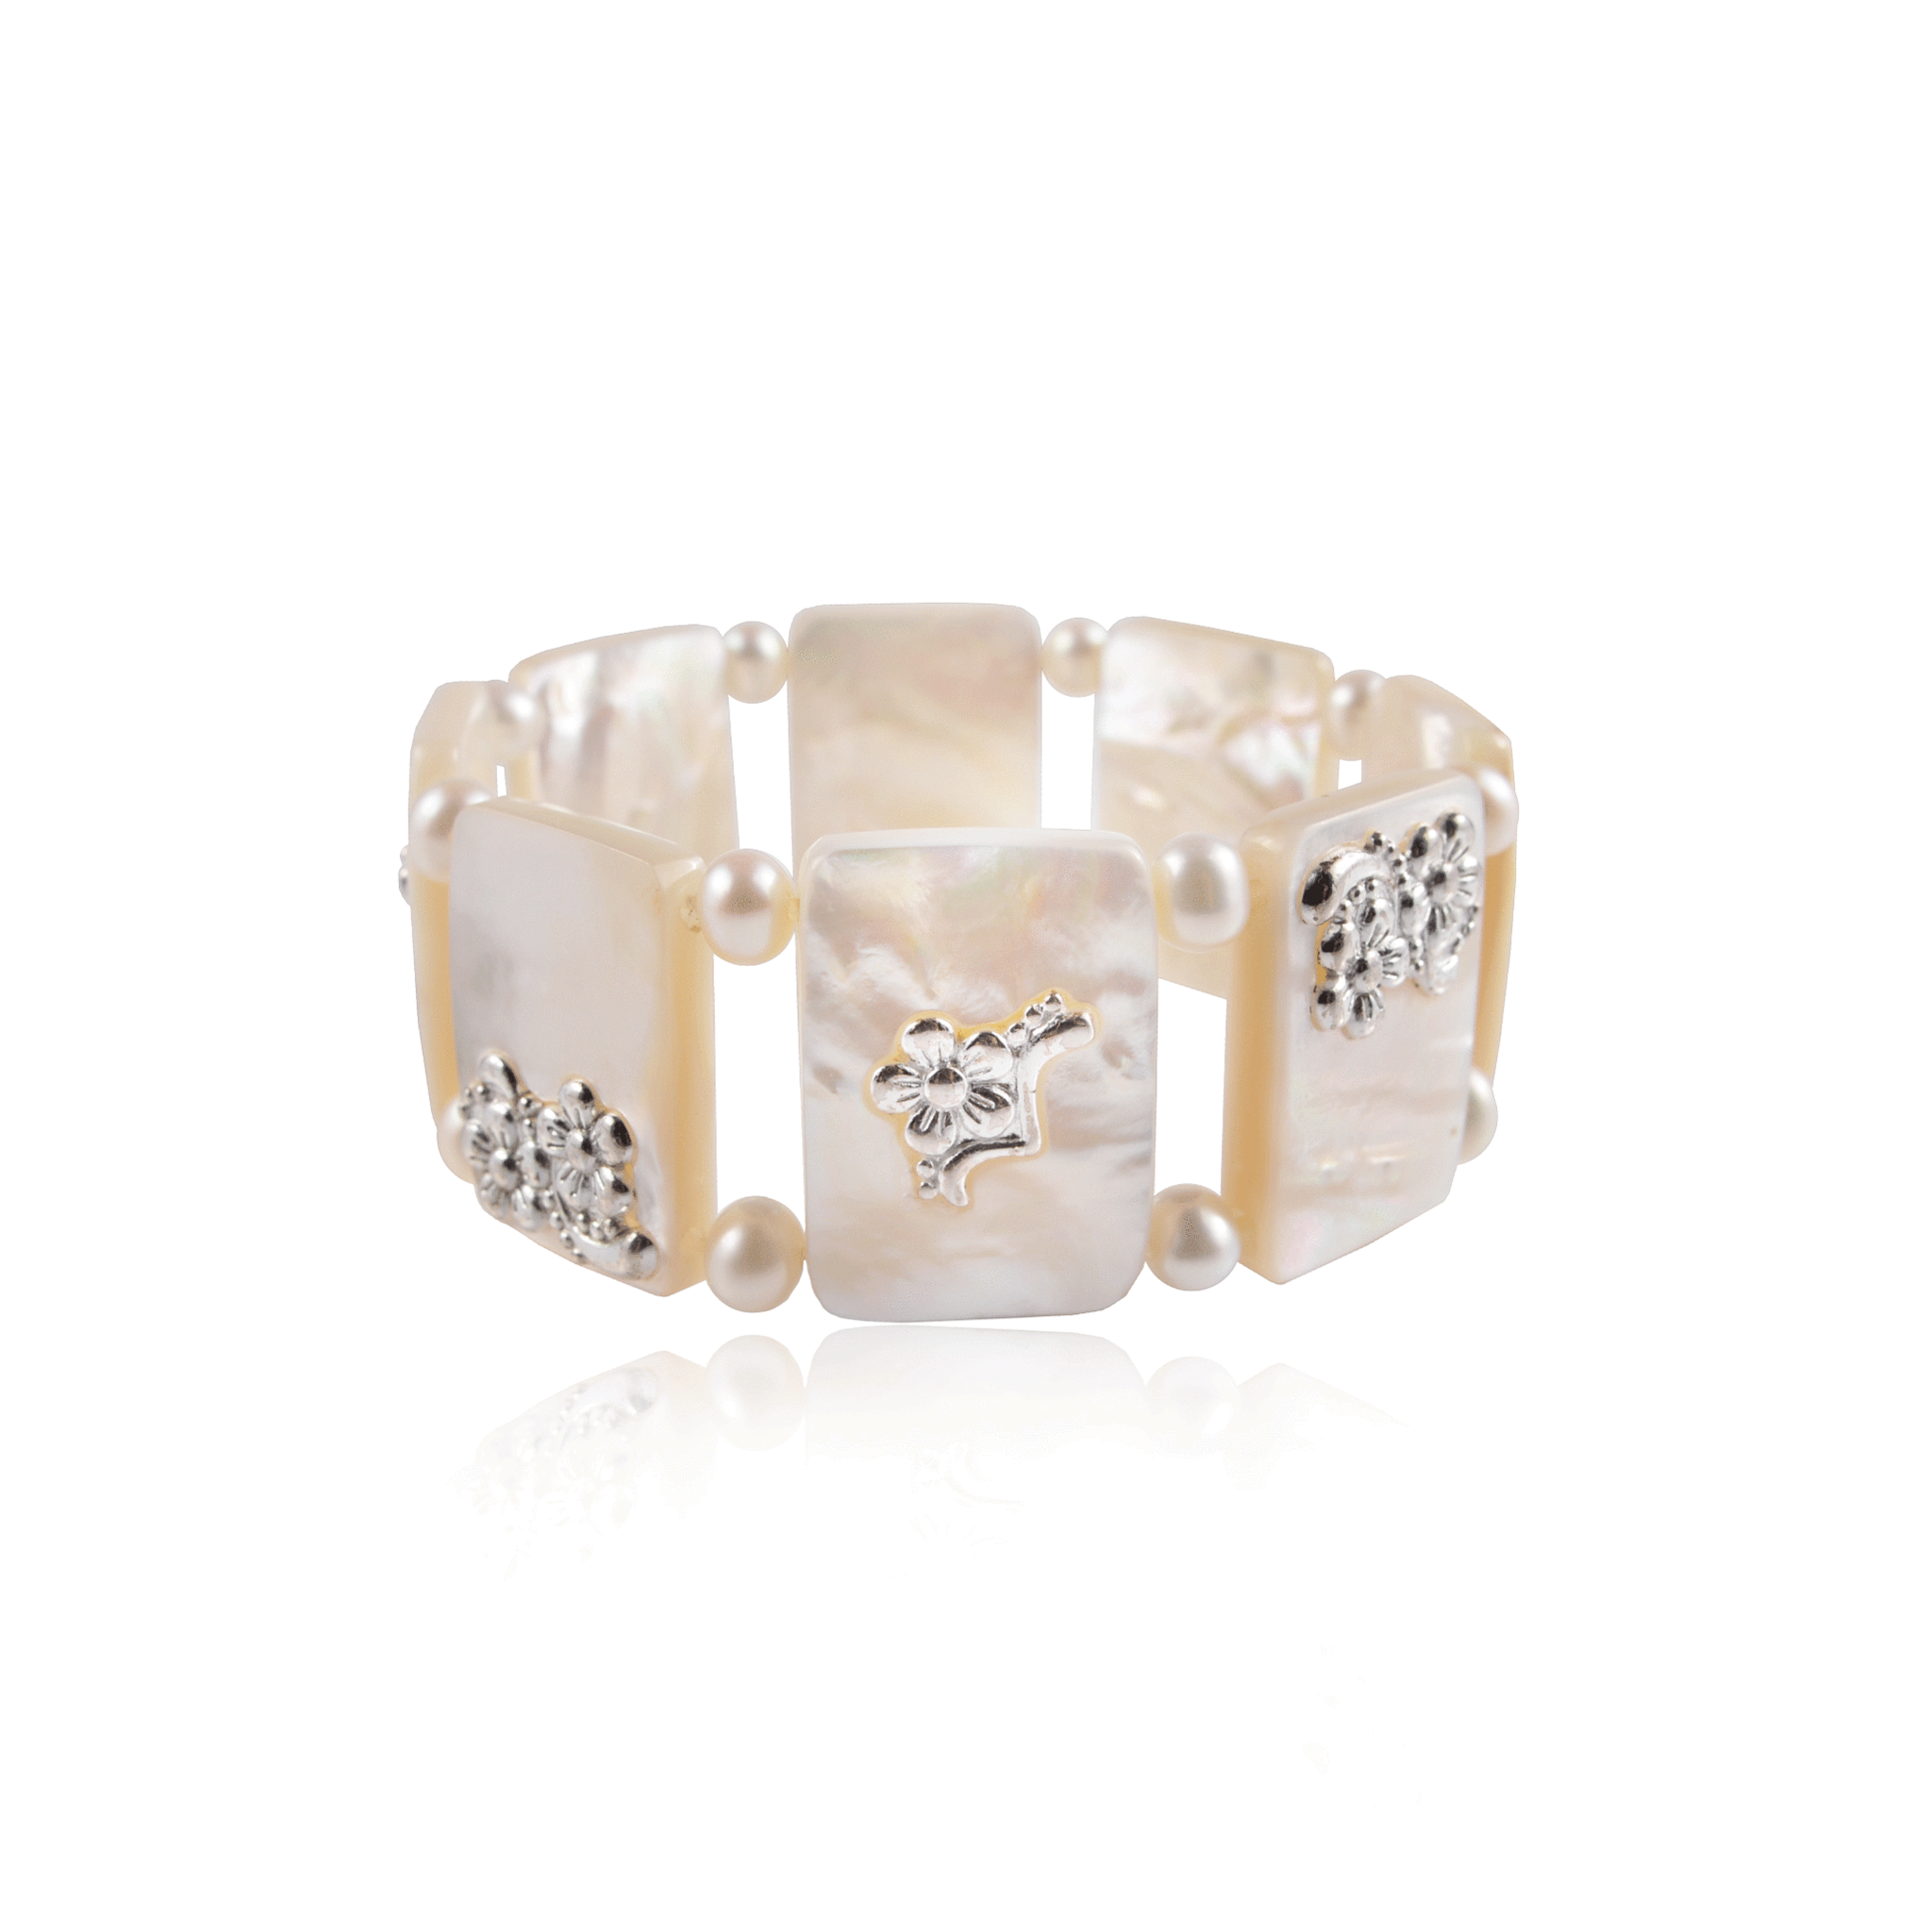 Square Floral Mother of Pearl Stretch Bracelet